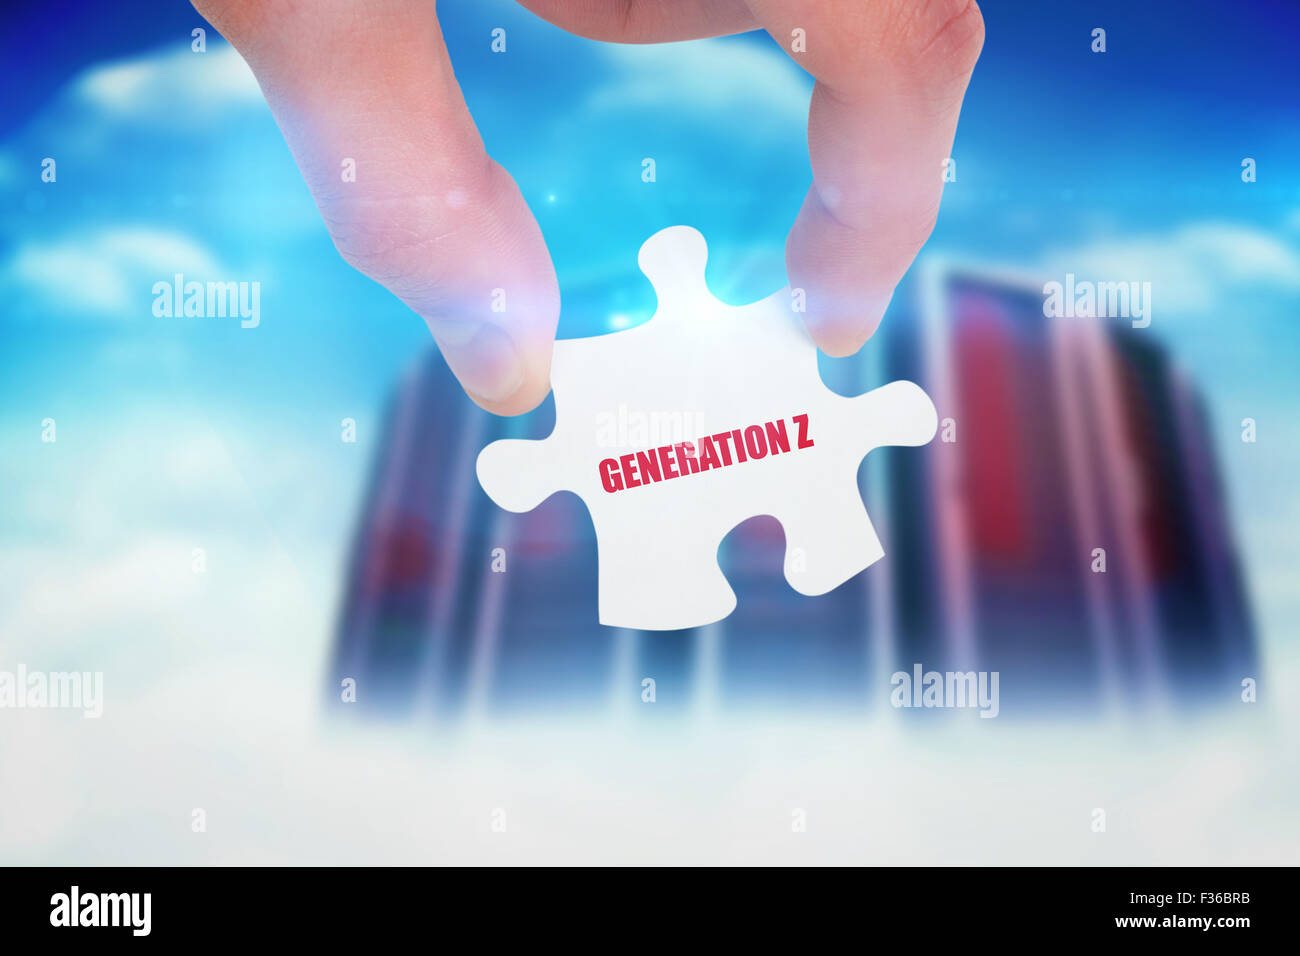 Generation z against composite image of server towers - Stock Image